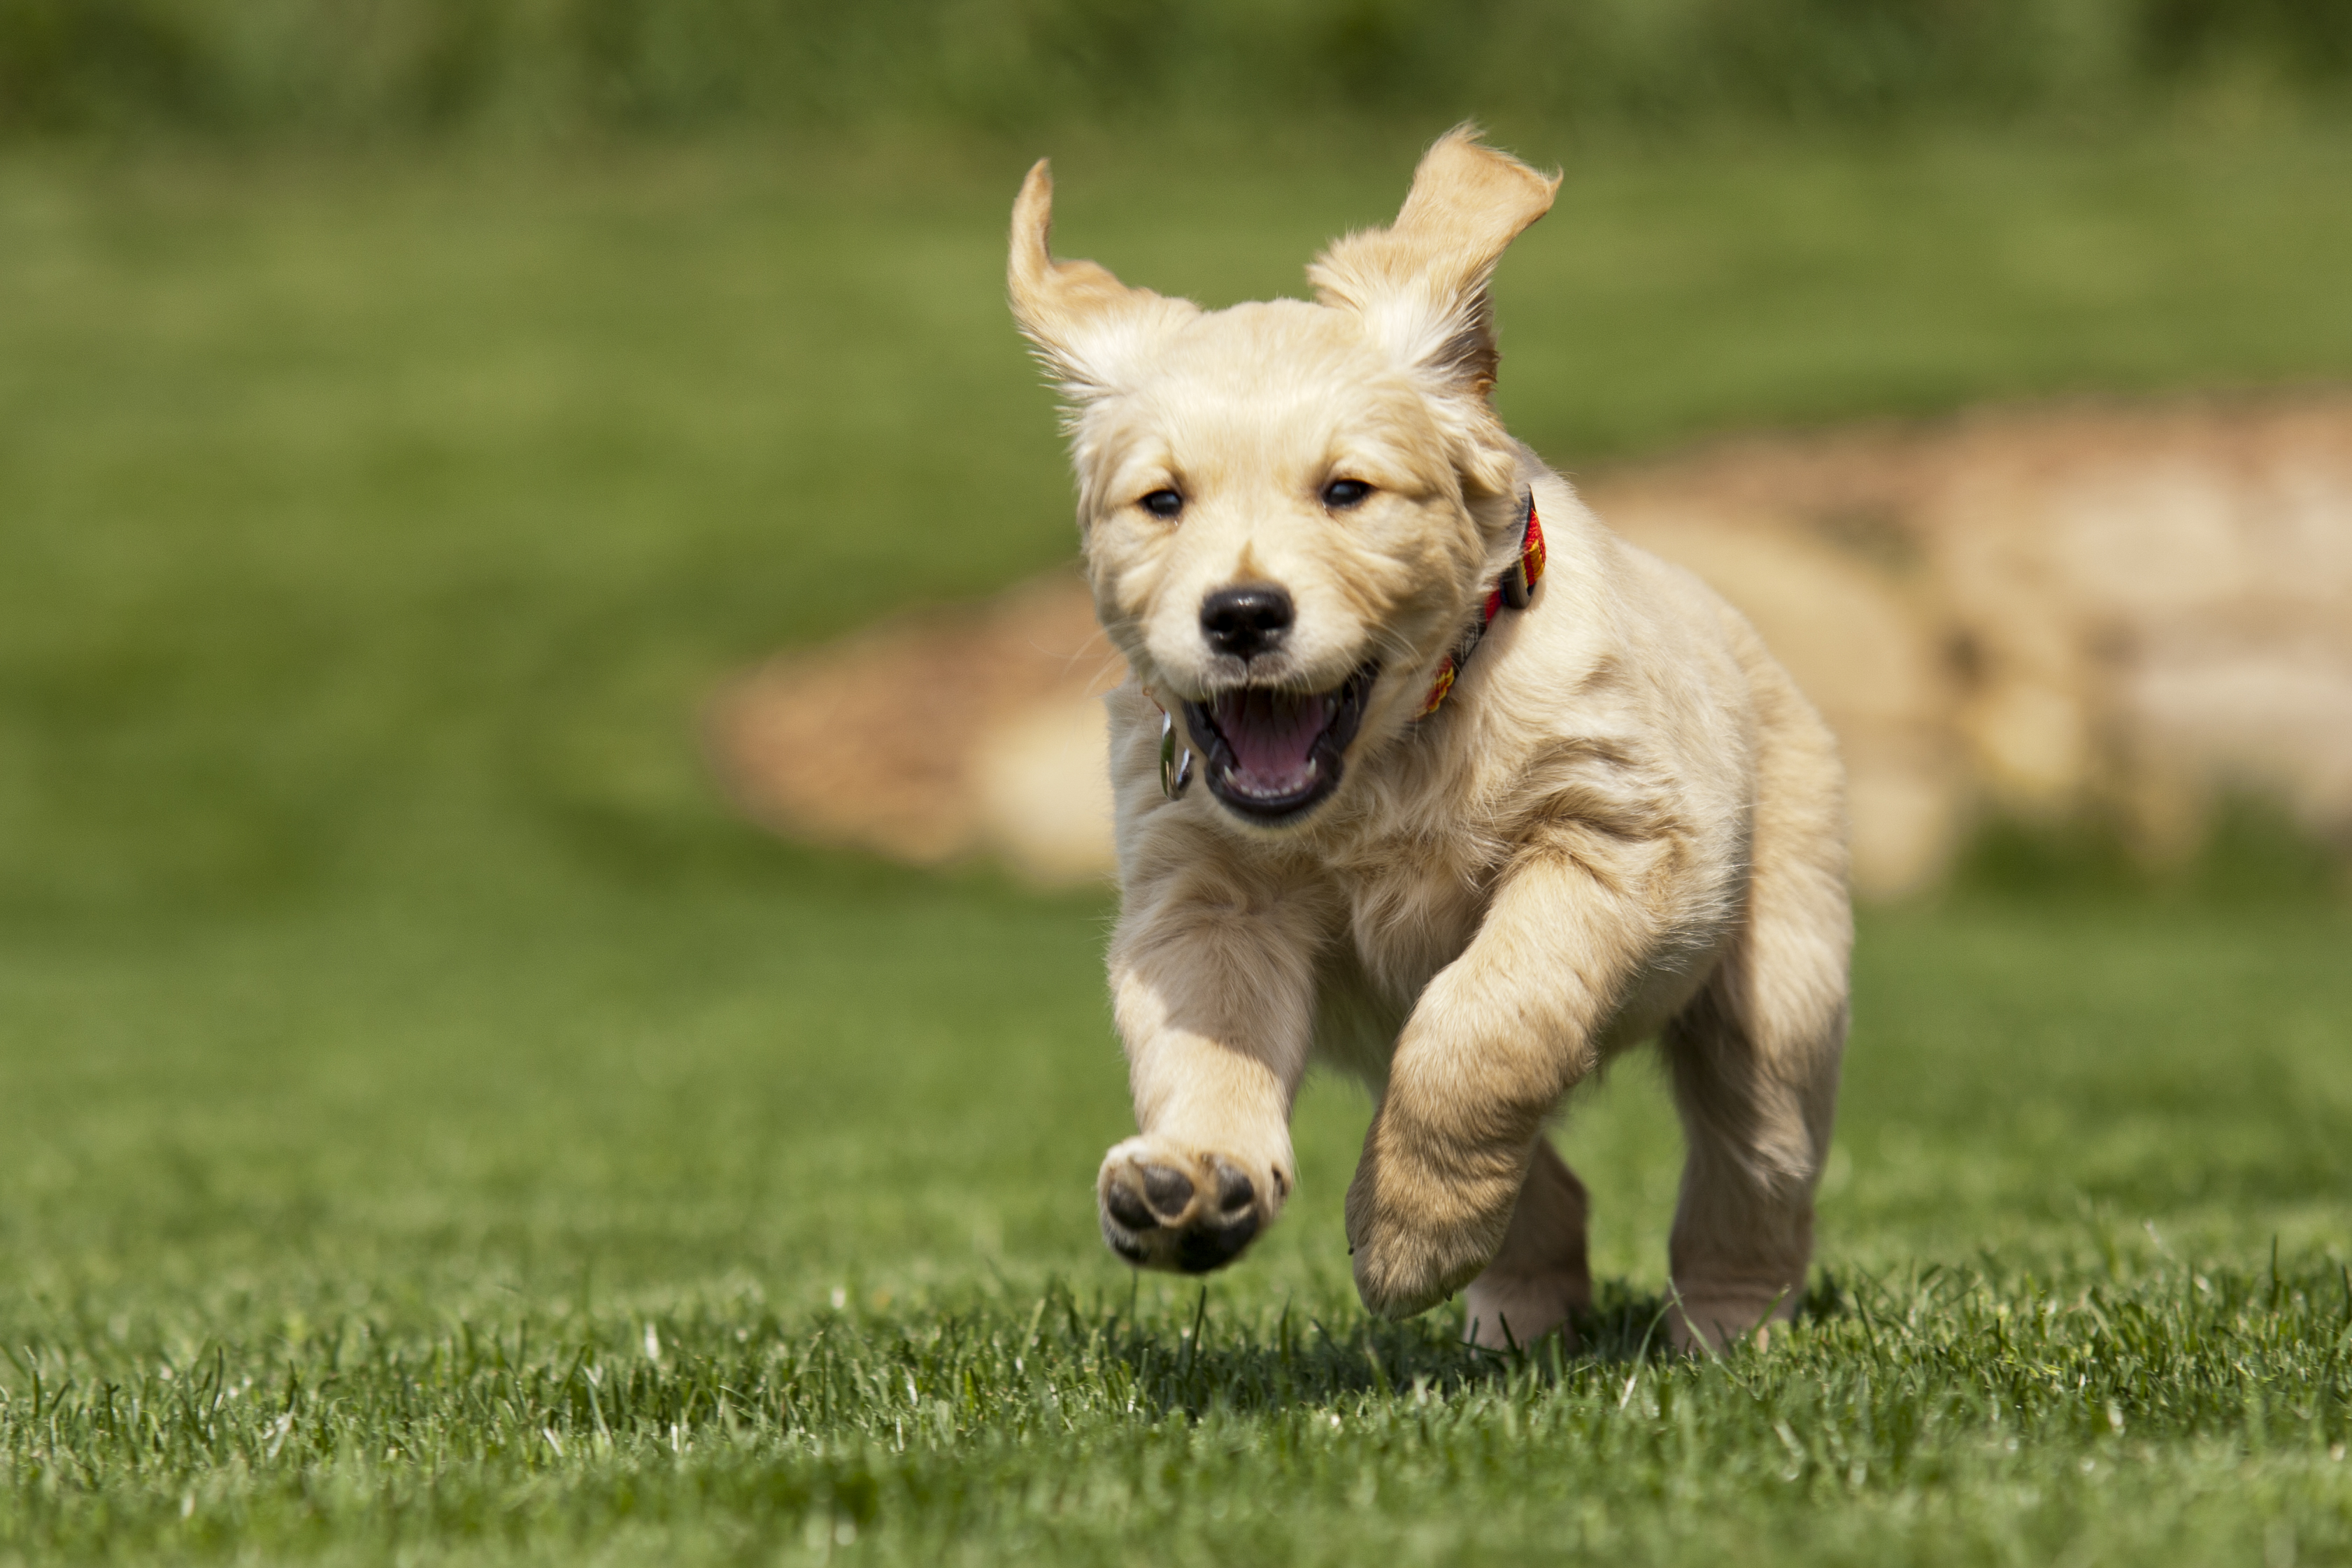 Top dog: Meet our best selling lawn seed - Lawn UK